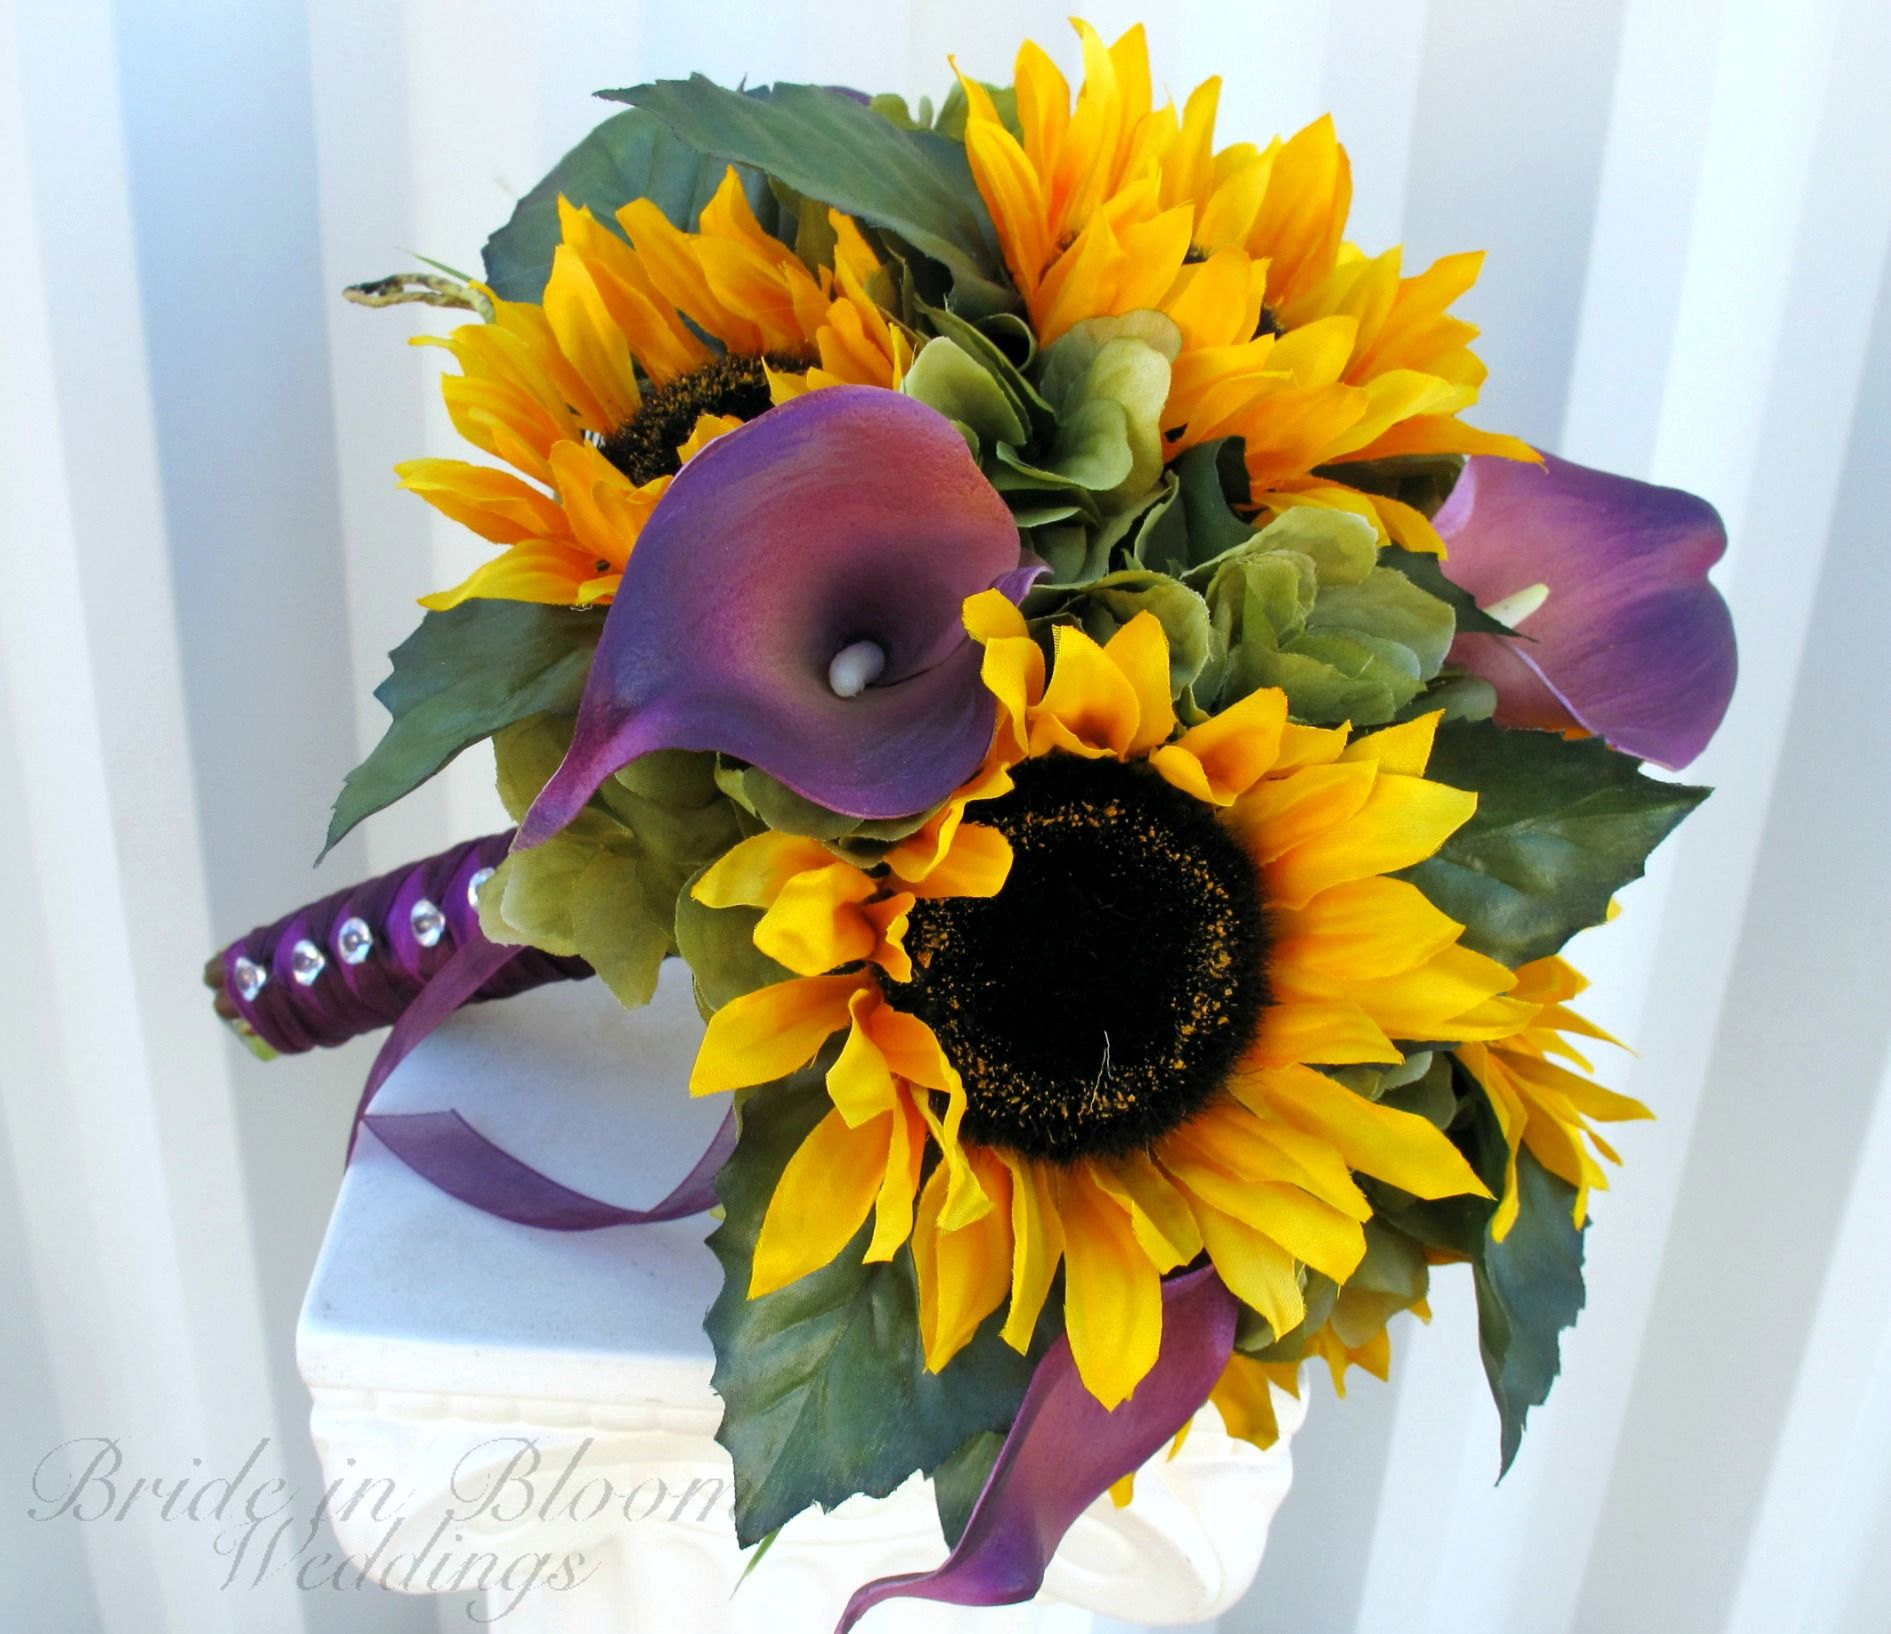 A Bride in Bloom sunflower & purple calla lily Wedding bouquet ...